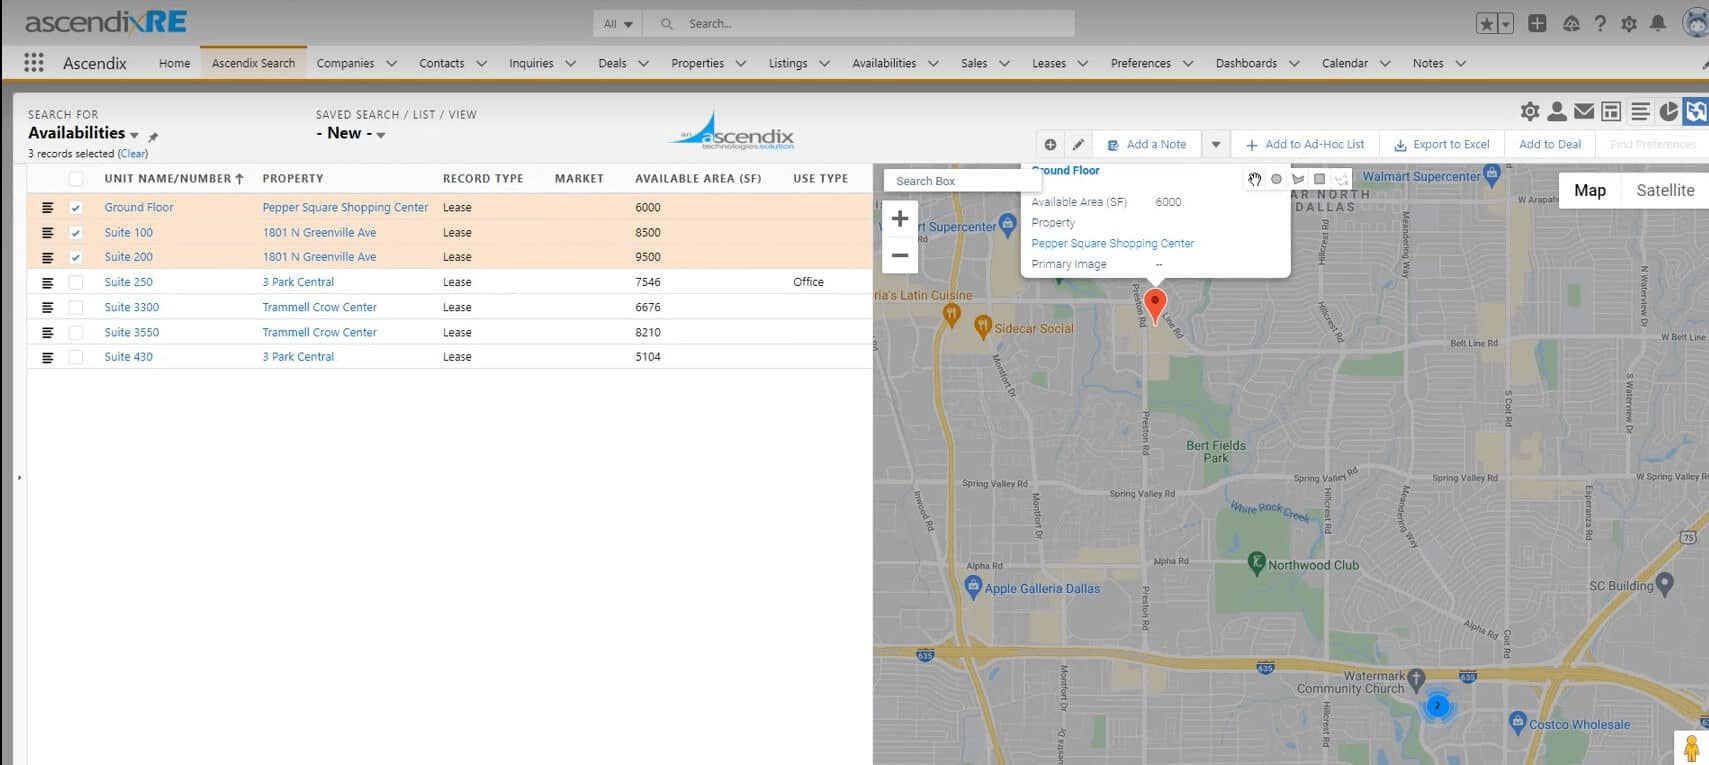 Ascendix Search property on the map